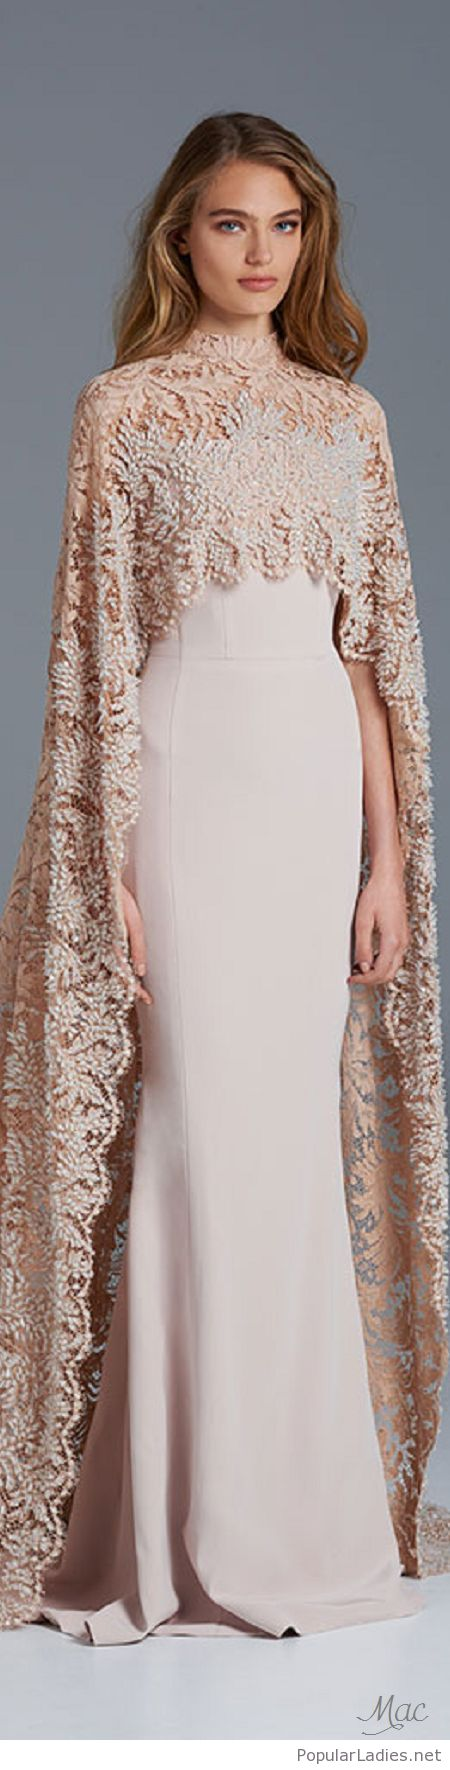 Lace dress with cape  Long nude dress with a lace cape  Pinterest  Nude dress Cape and Nude